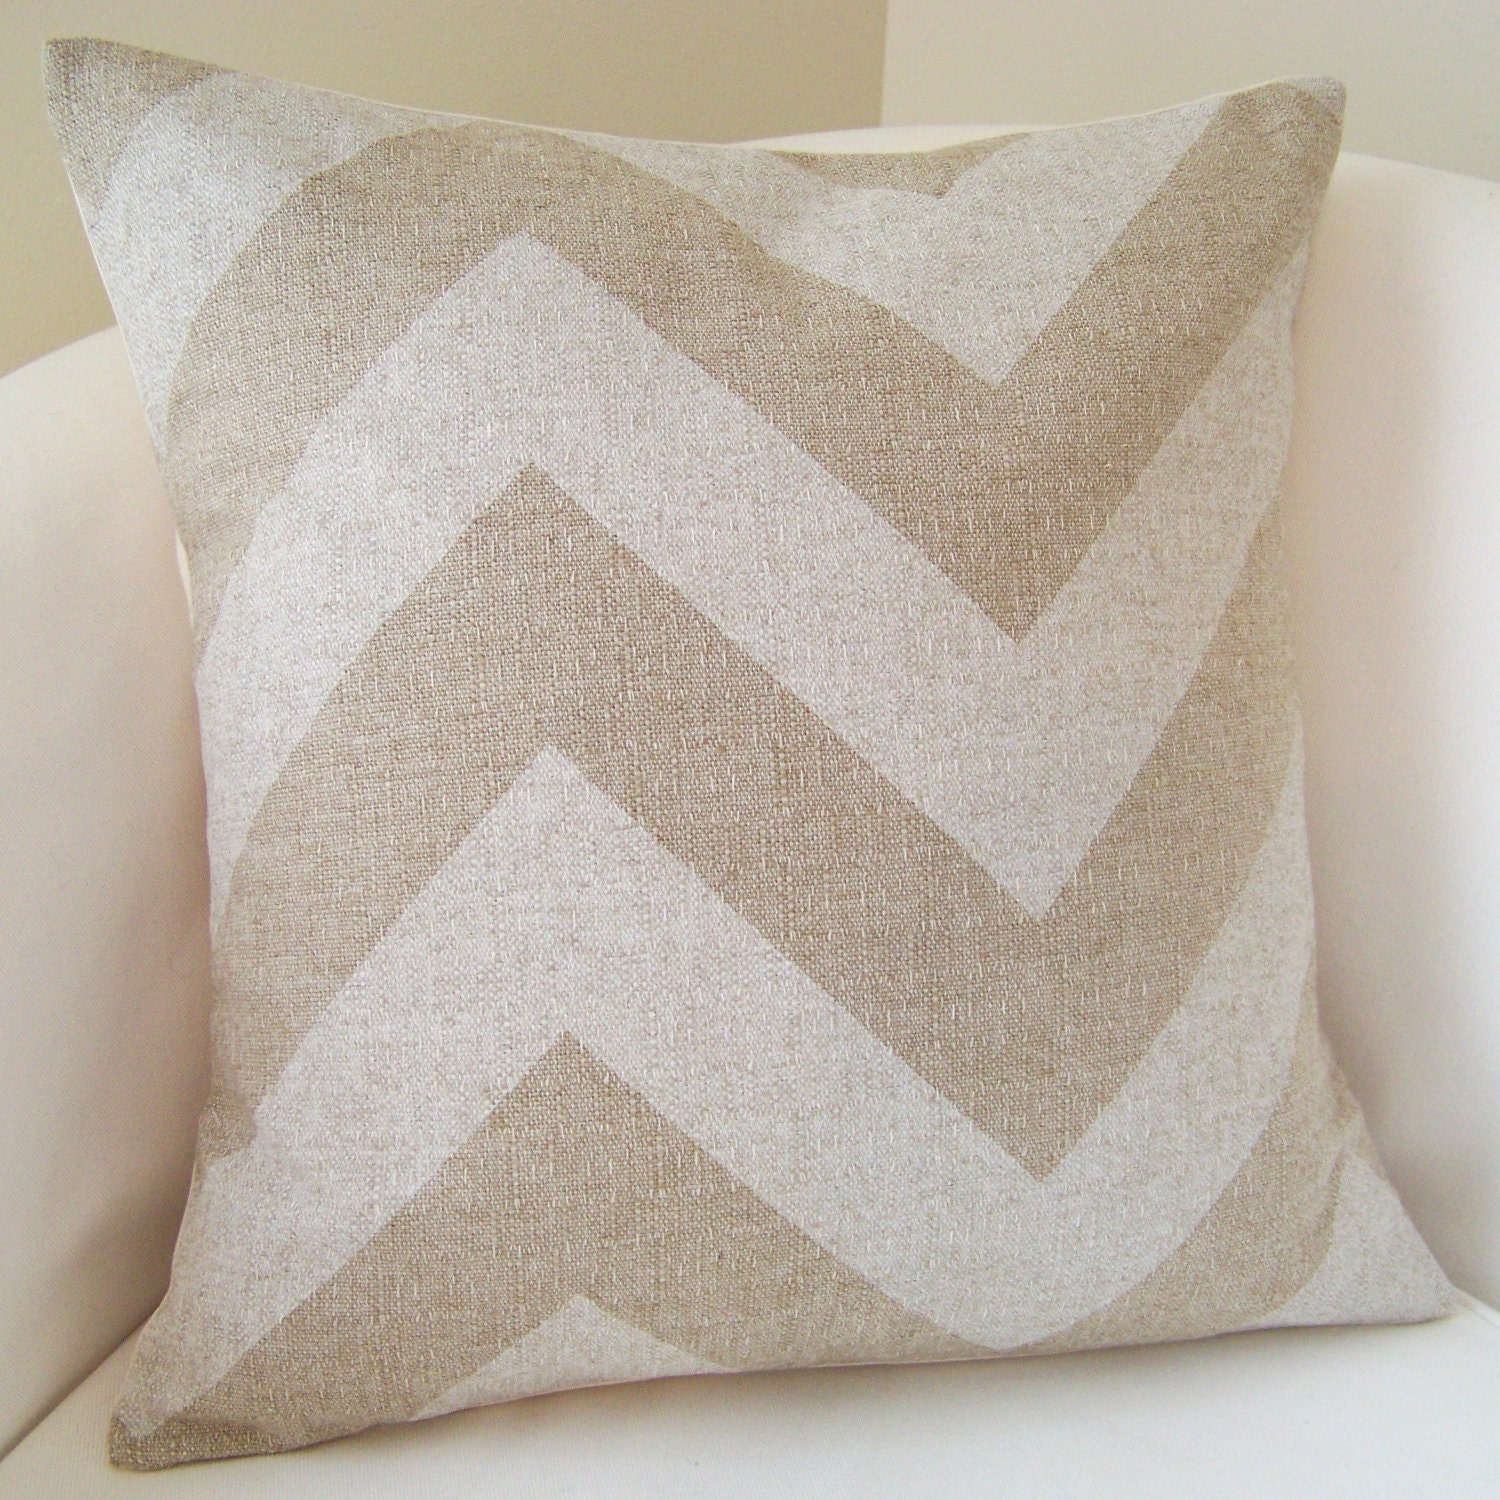 Decorative Throw Pillows Etsy : Decorative Pillow Cover Chevron Pillow Zig Zag by nestables